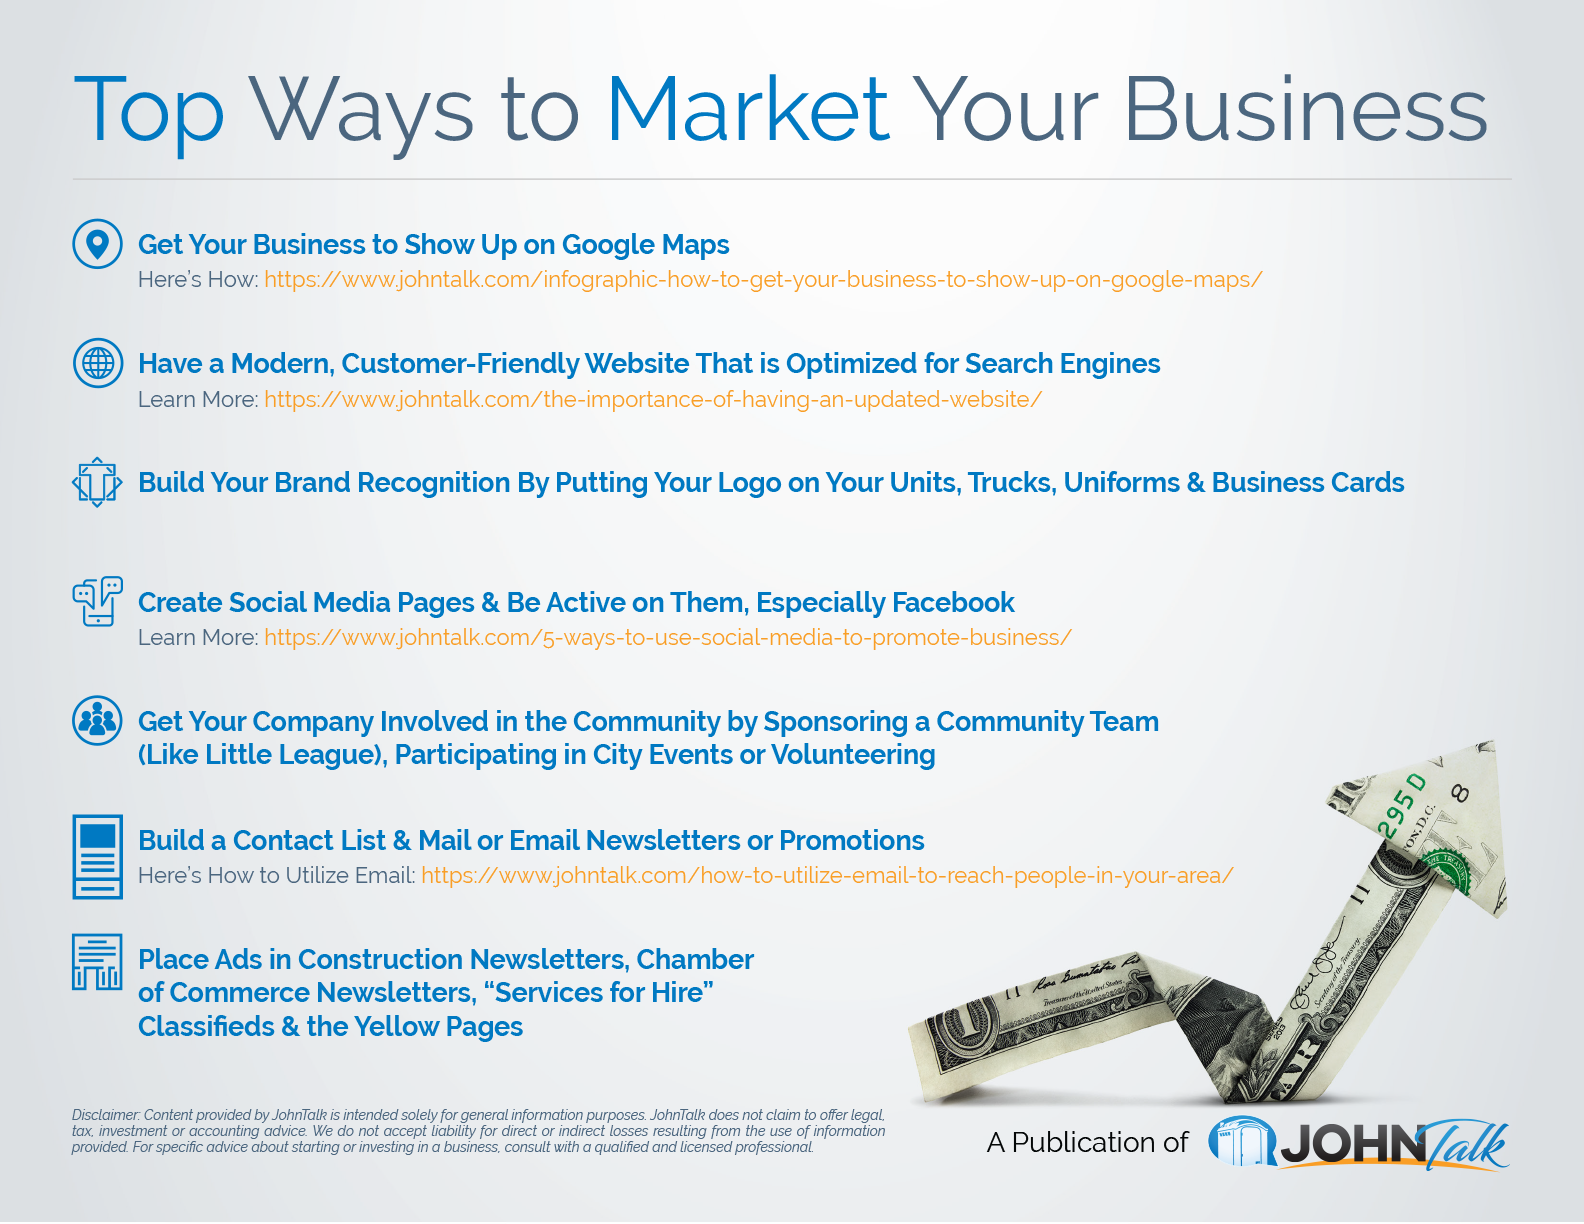 Top Ways to Market Your Business